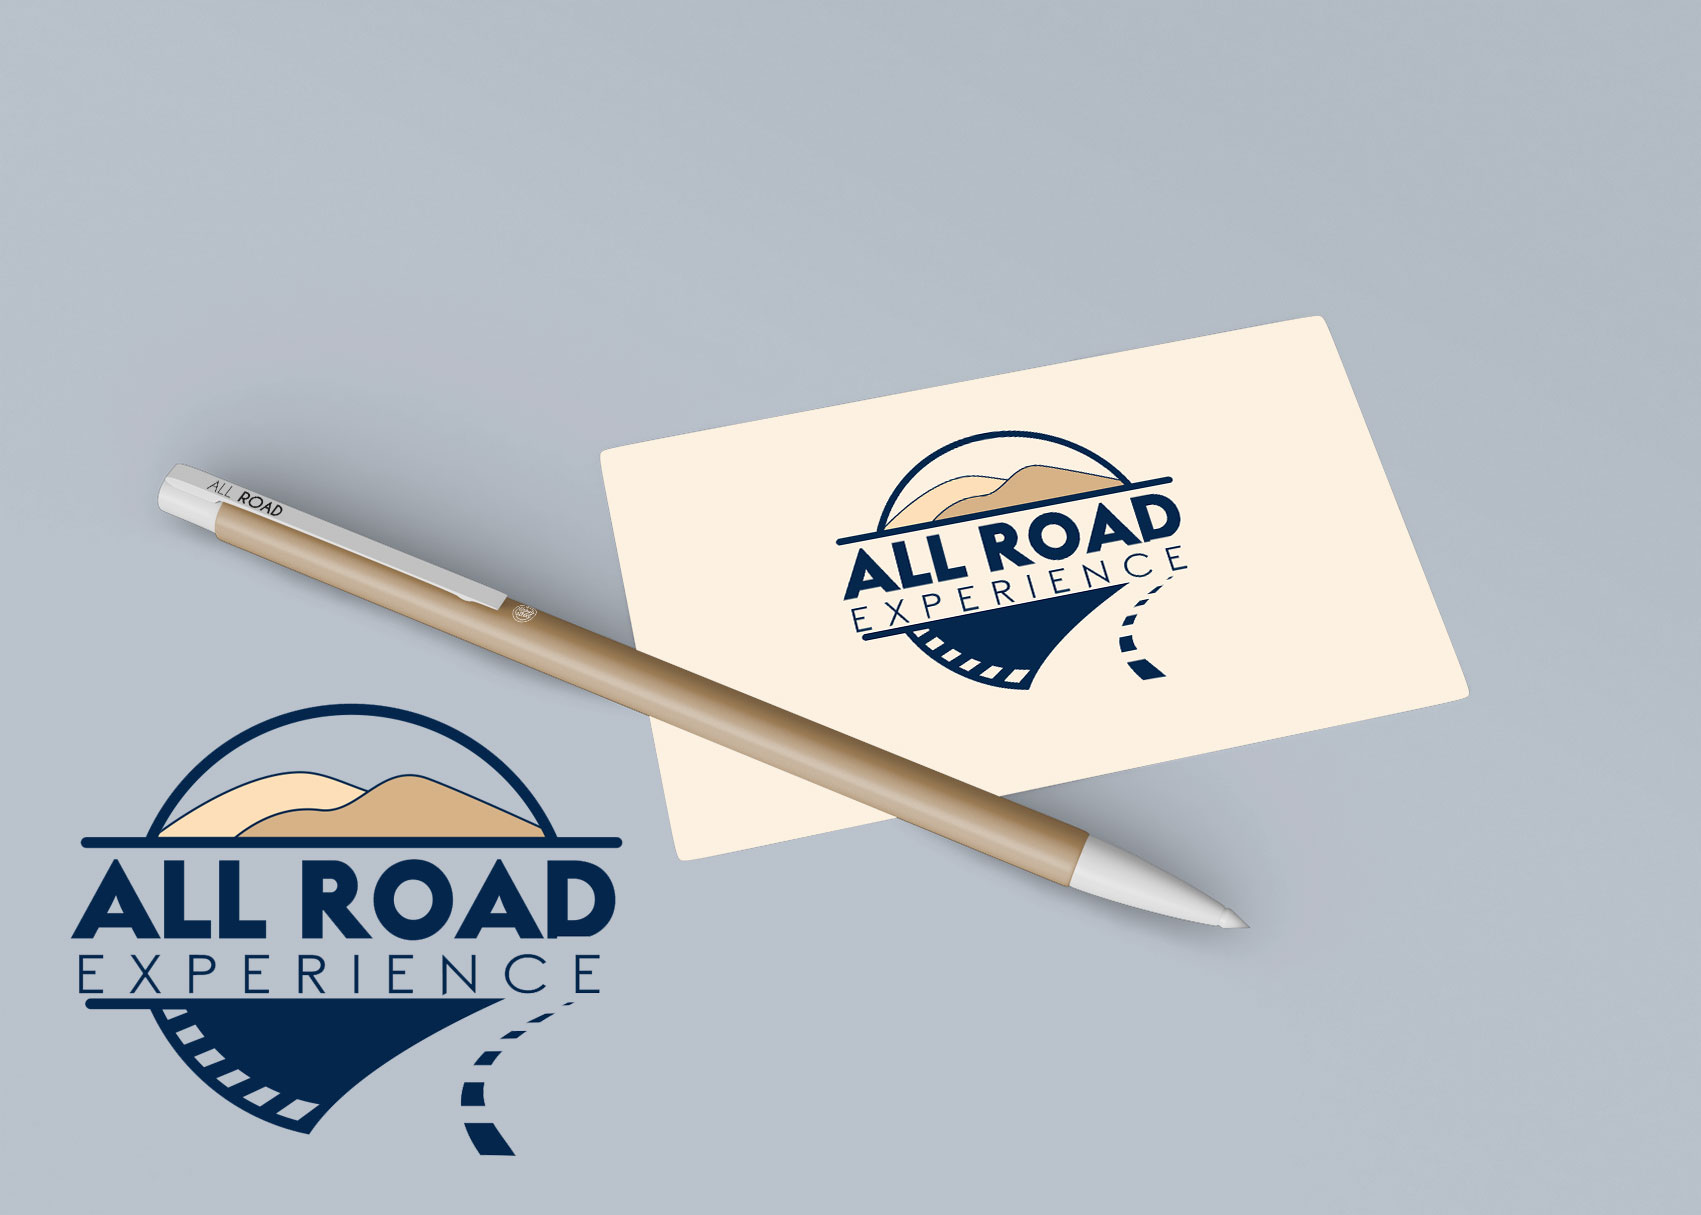 LOGO ALL-ROAD-EXPERIENCE-skoncommunication-v-147